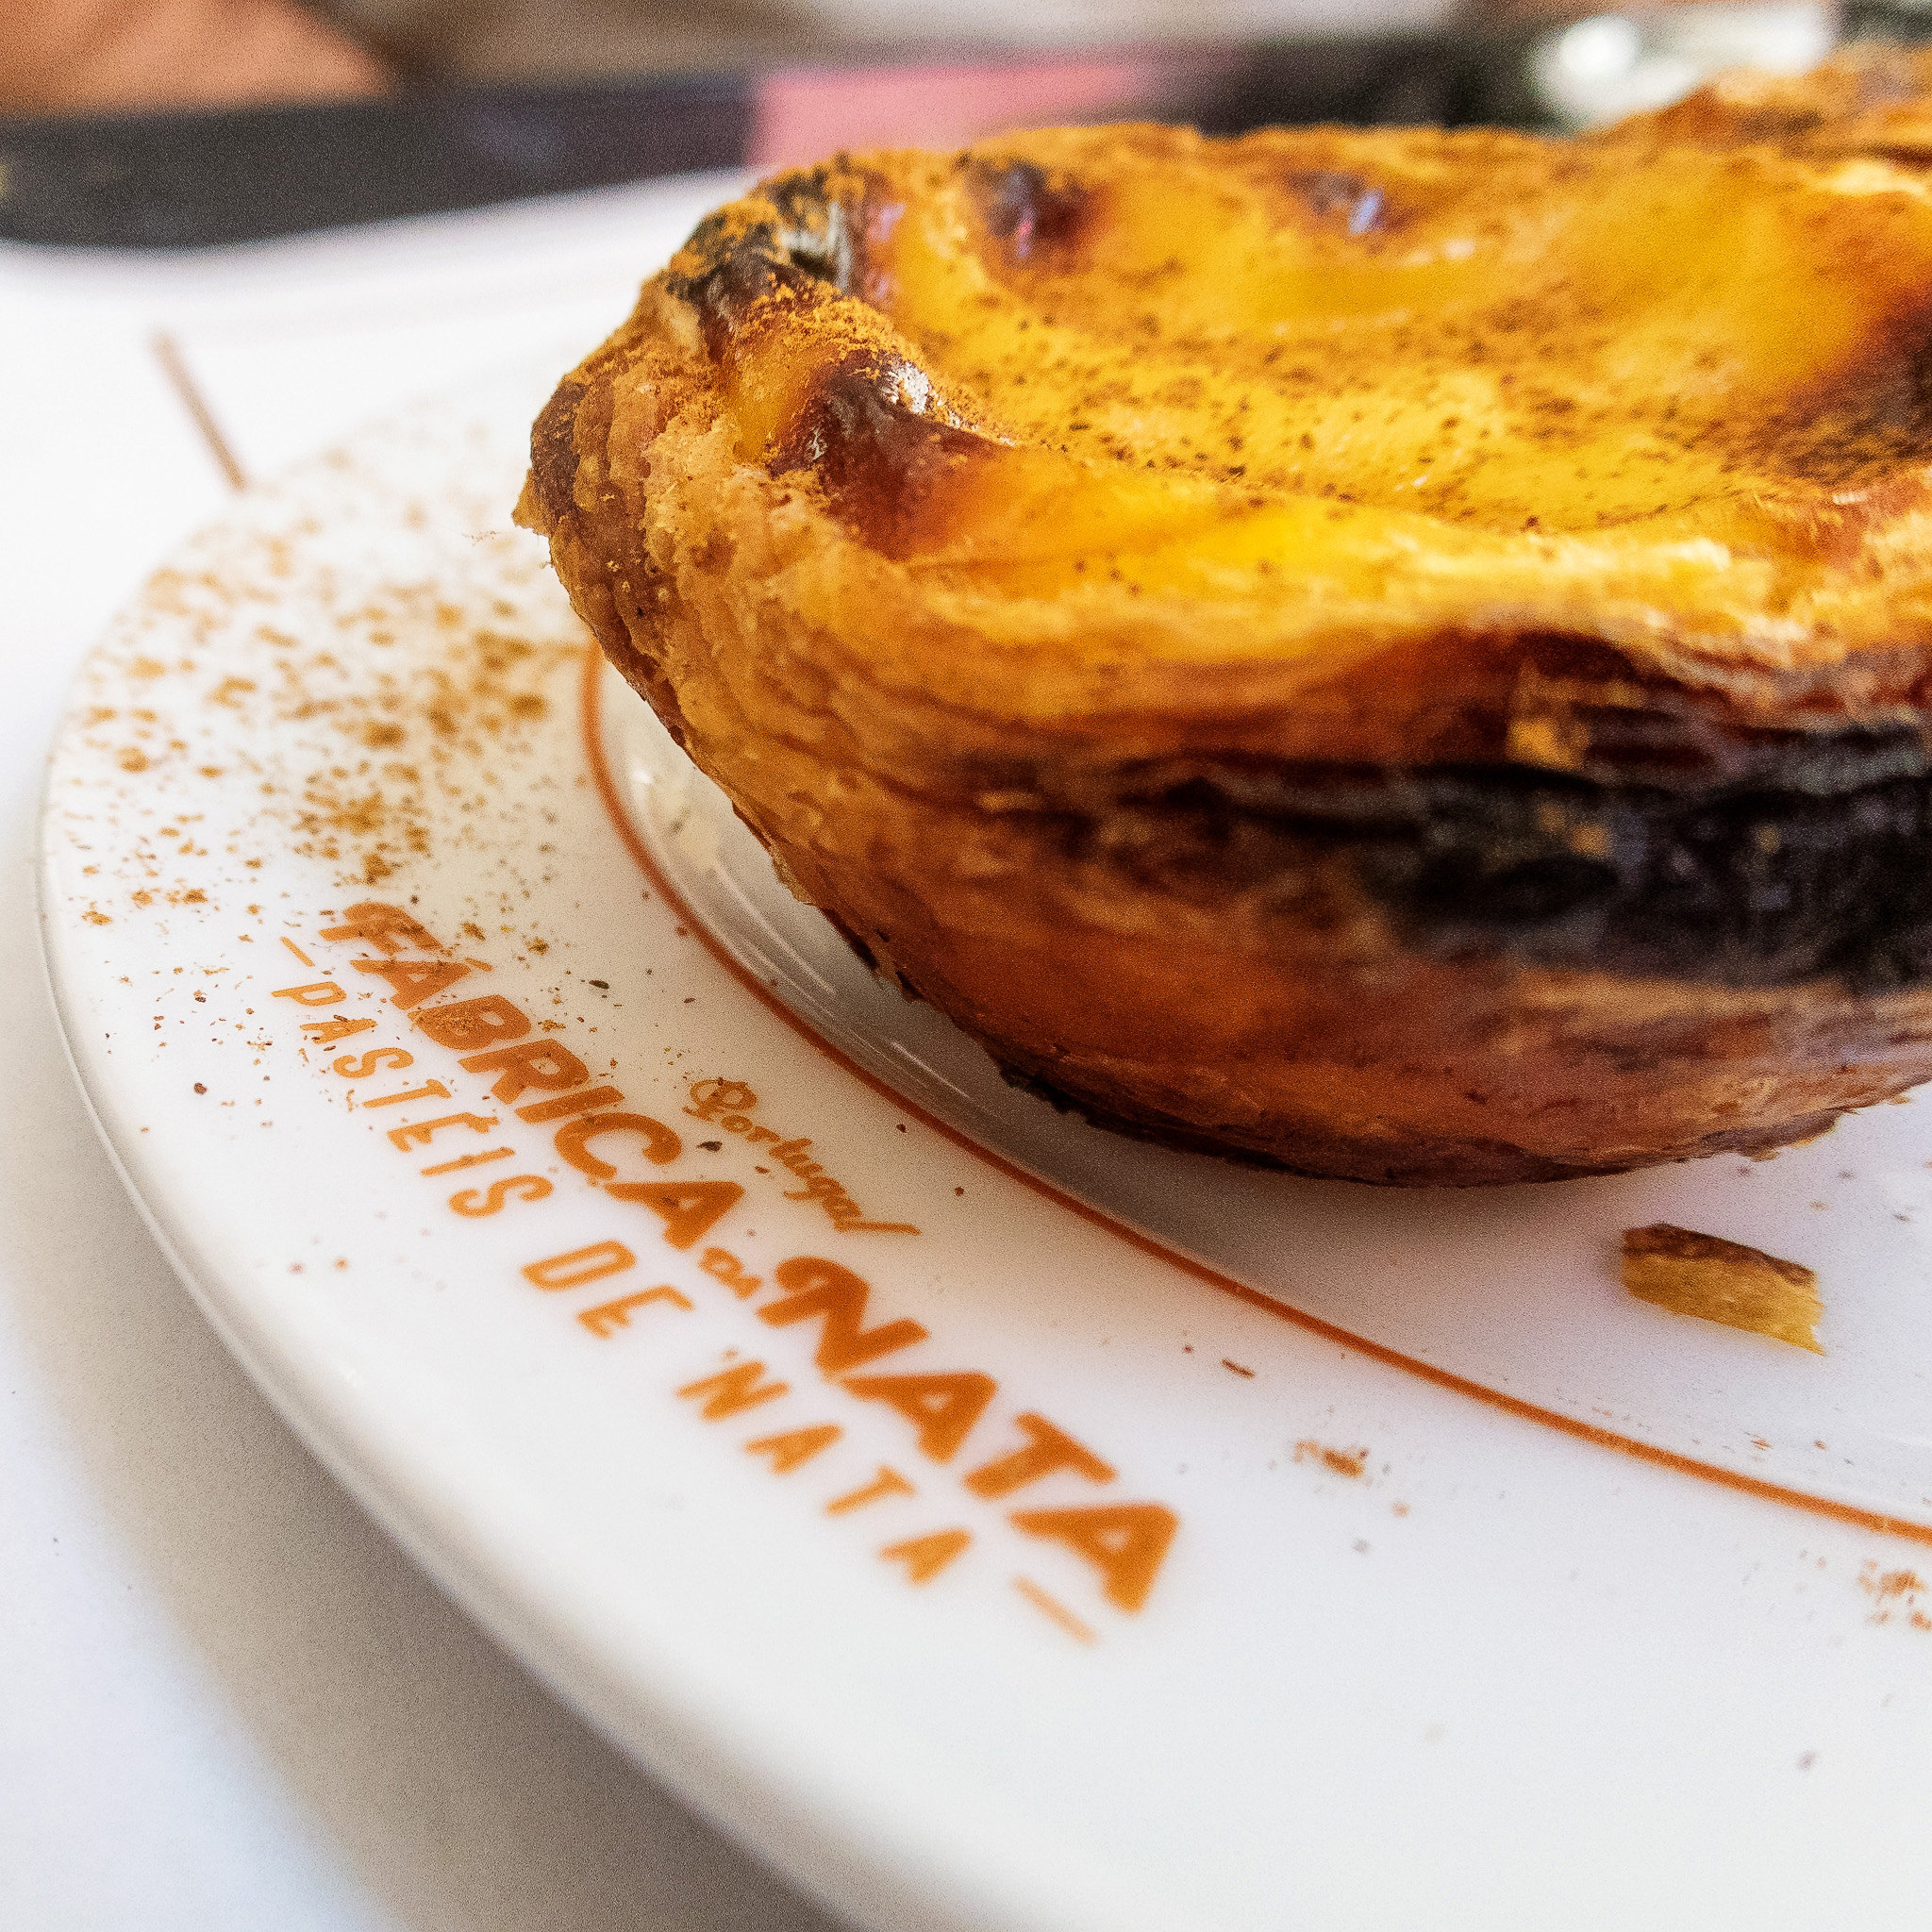 Where to Find the Best 'Pasteis de nata' Portuguese Egg Tarts in each Neighbourhood in Lisbon